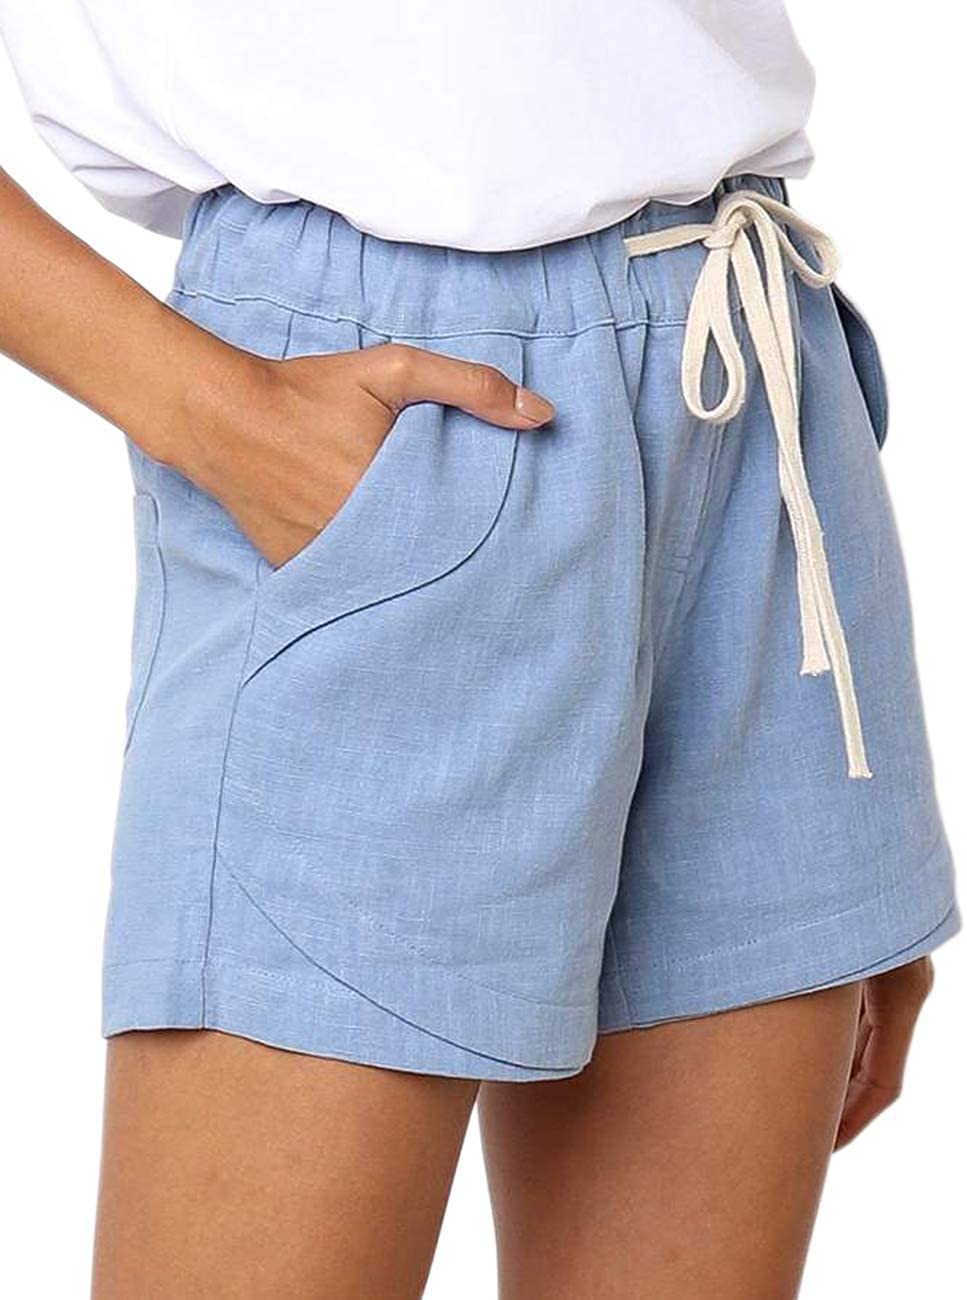 S-XXL CILKOO Womens Drawstring Elastic Waist Casual Comfy Cotton Linen Beach Shorts